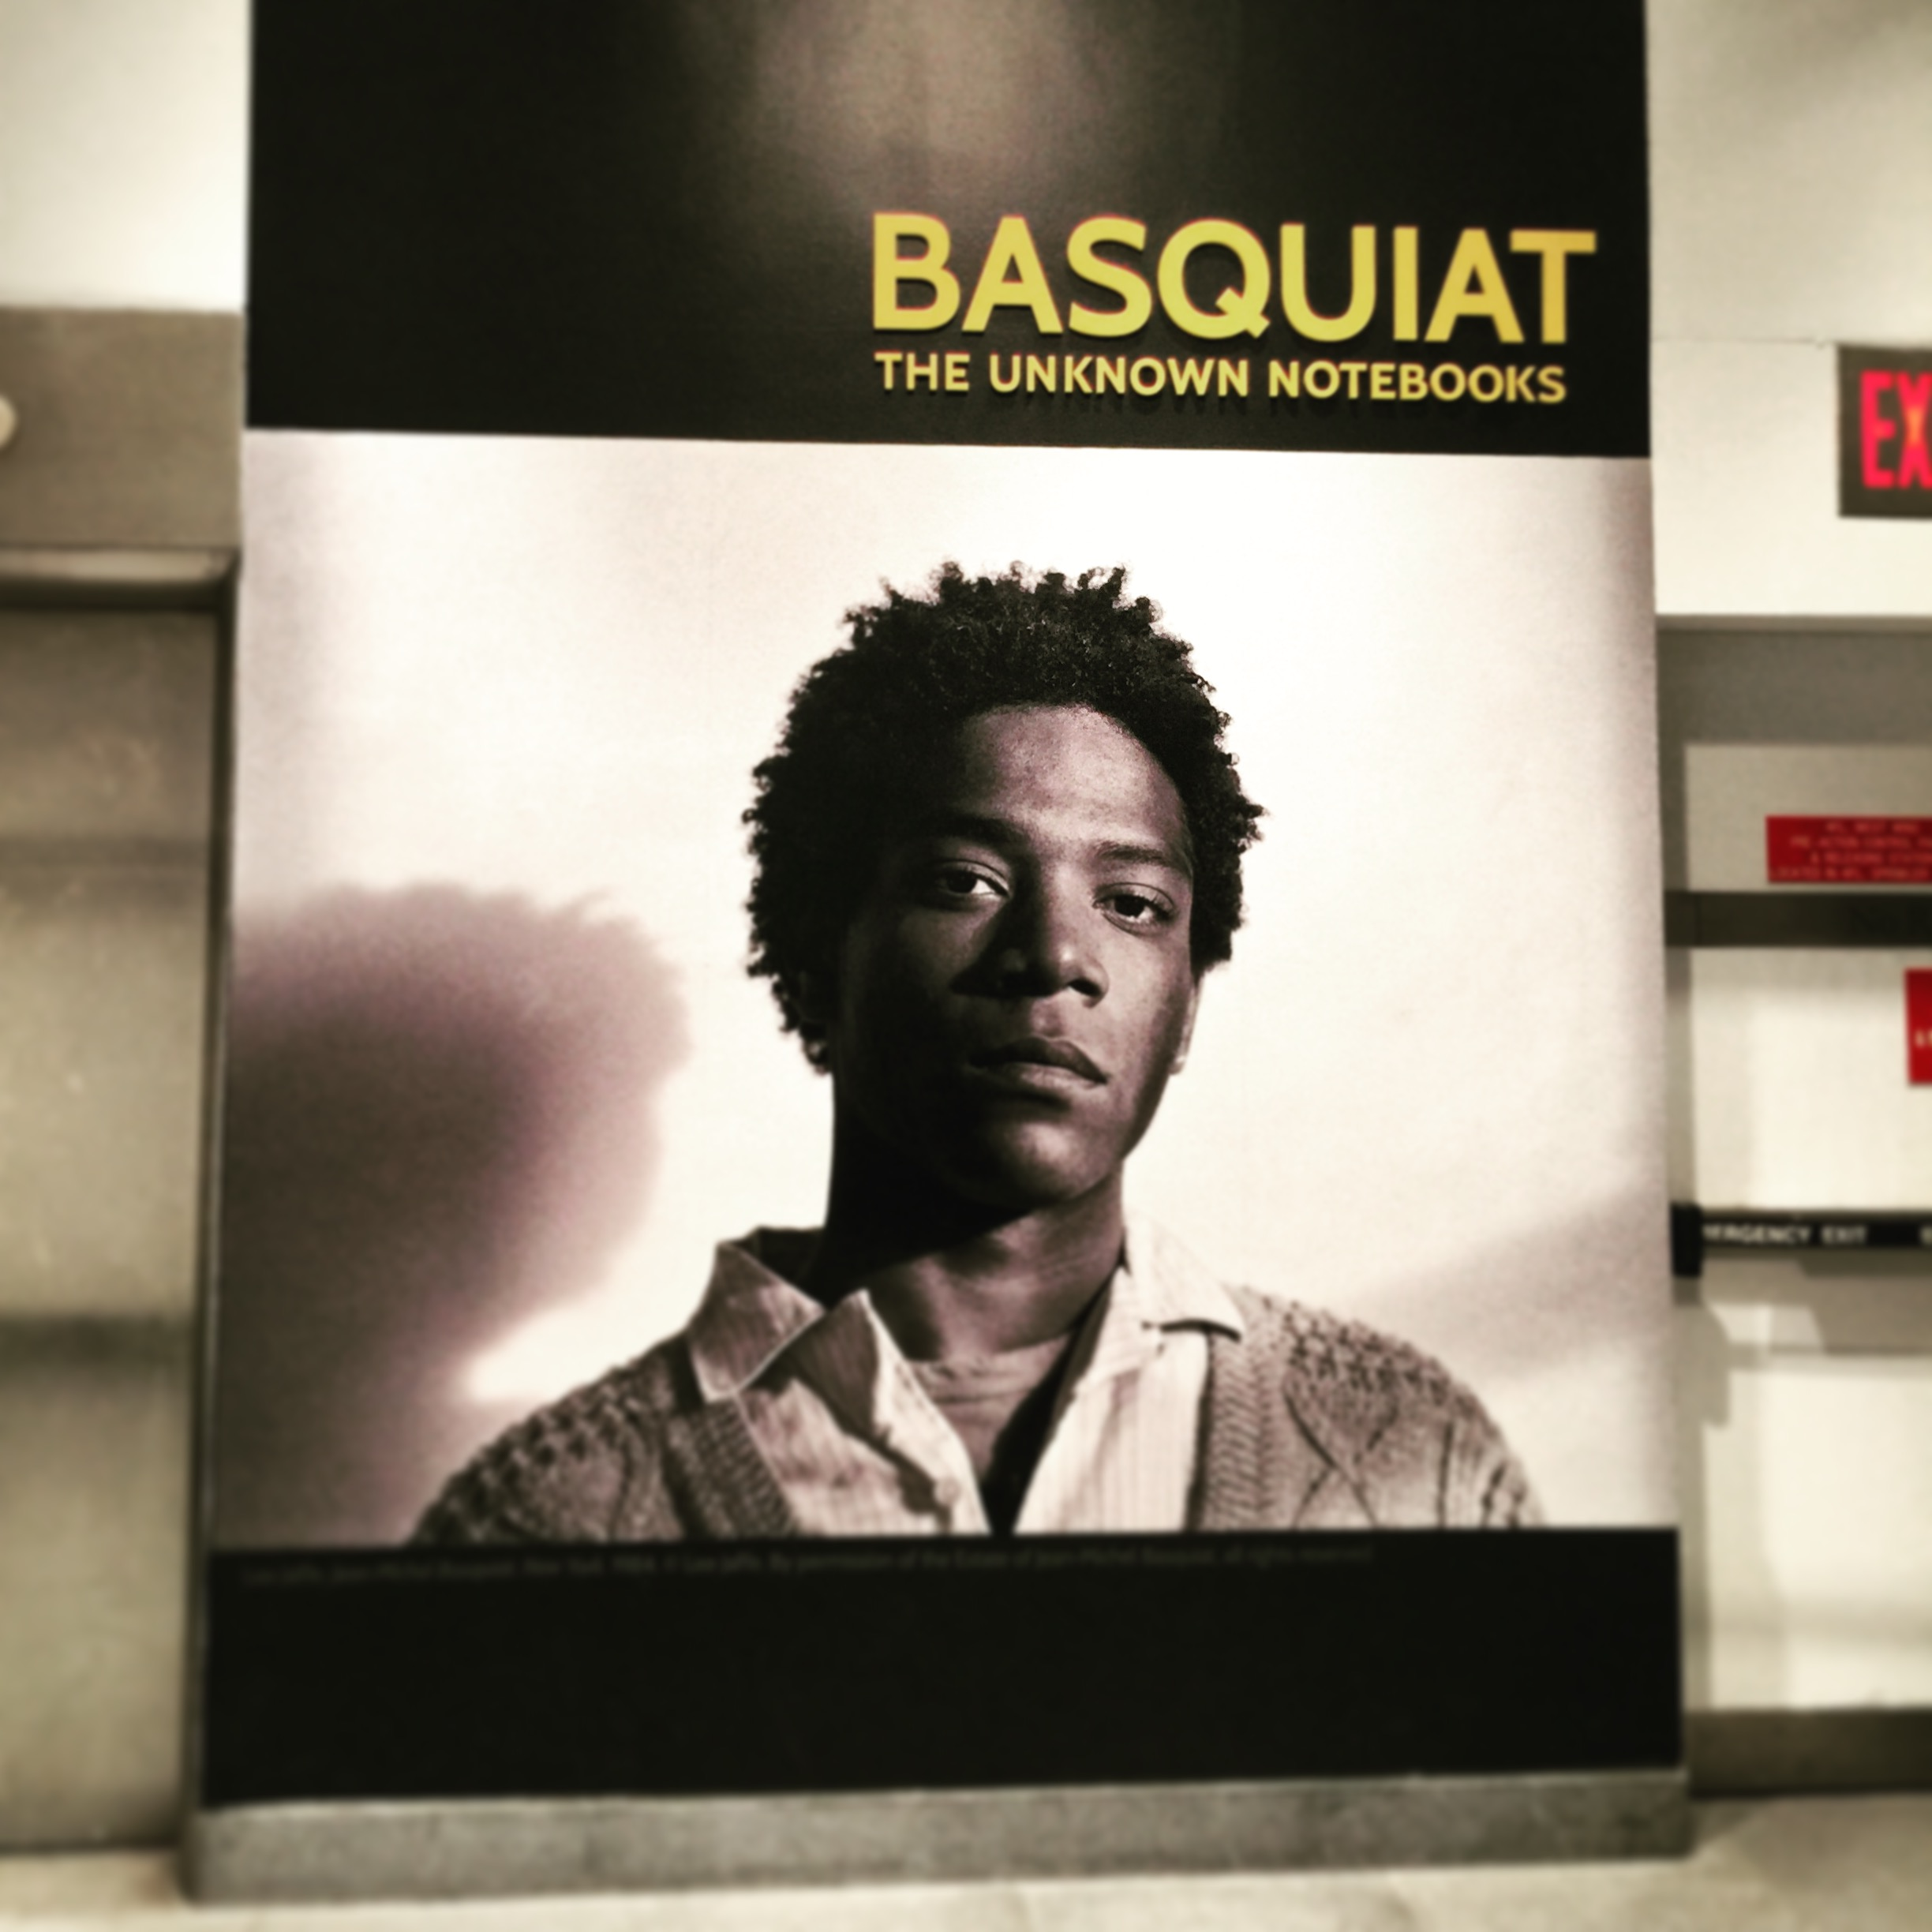 The Basquiat show was an important retrospective of the artist's notebooks and thought processes around his art practice.